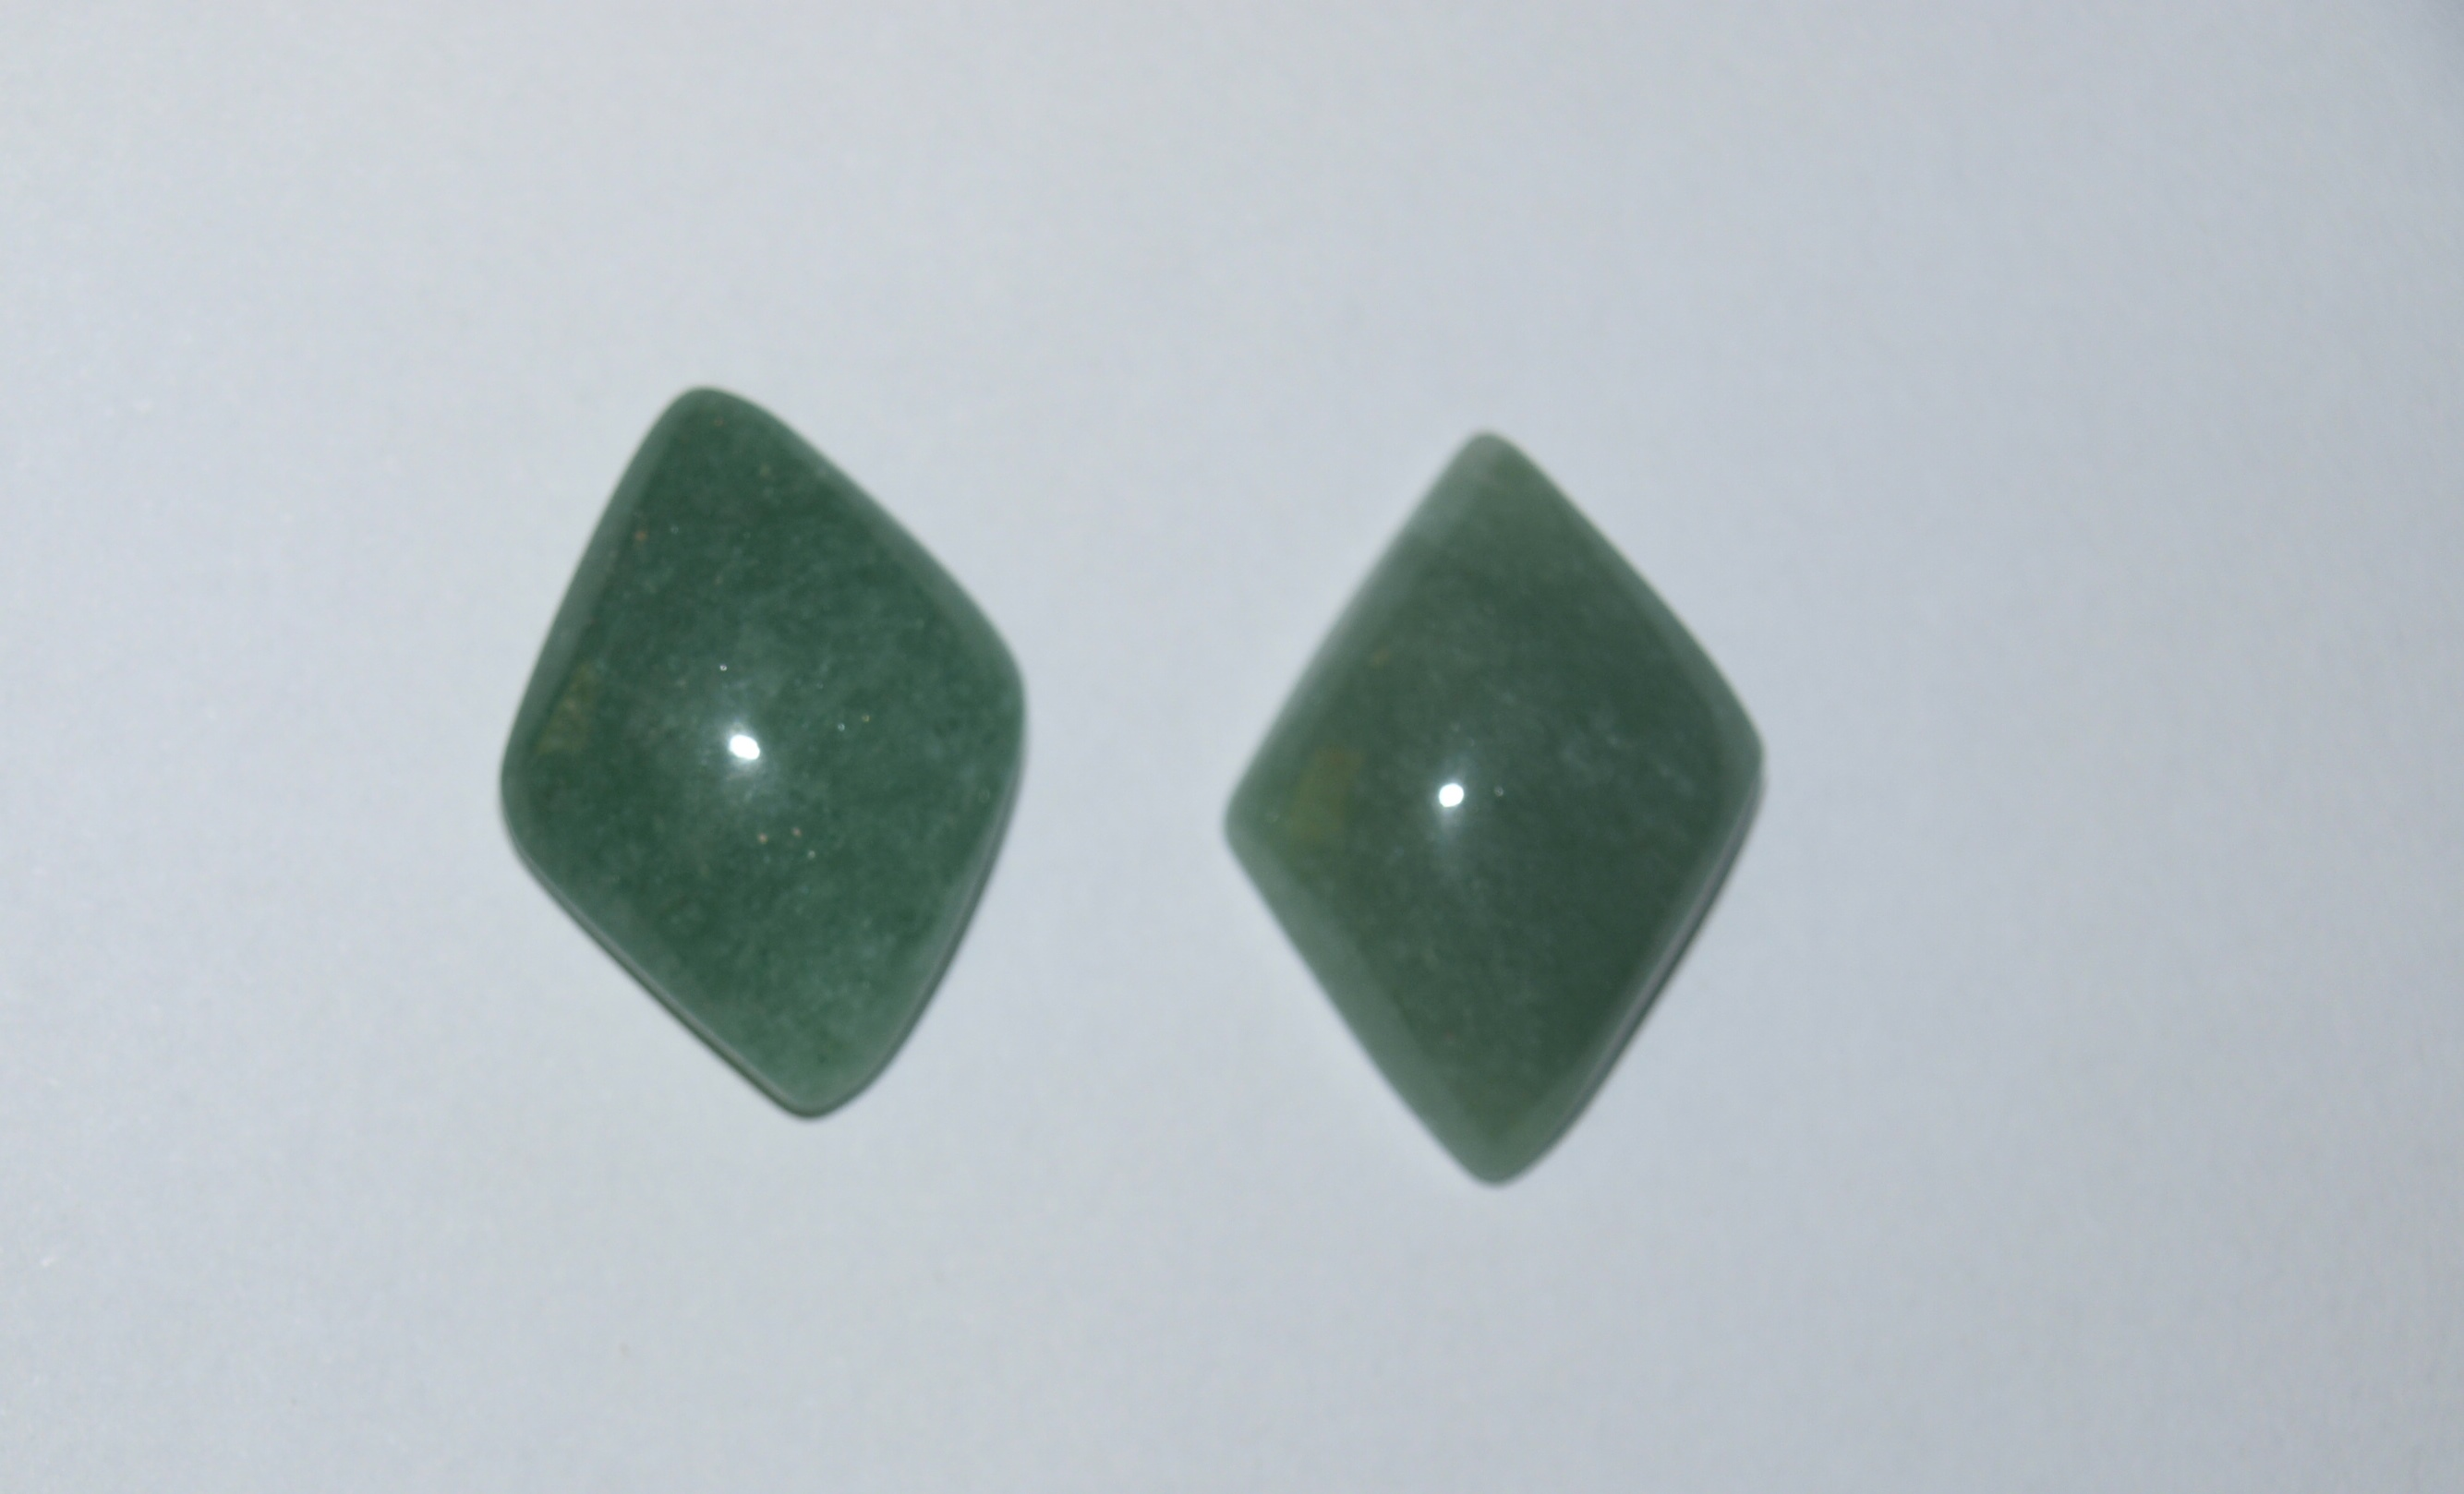 Stones from Uruguay - Green Aventurine Losango Cabochon for Earring Making